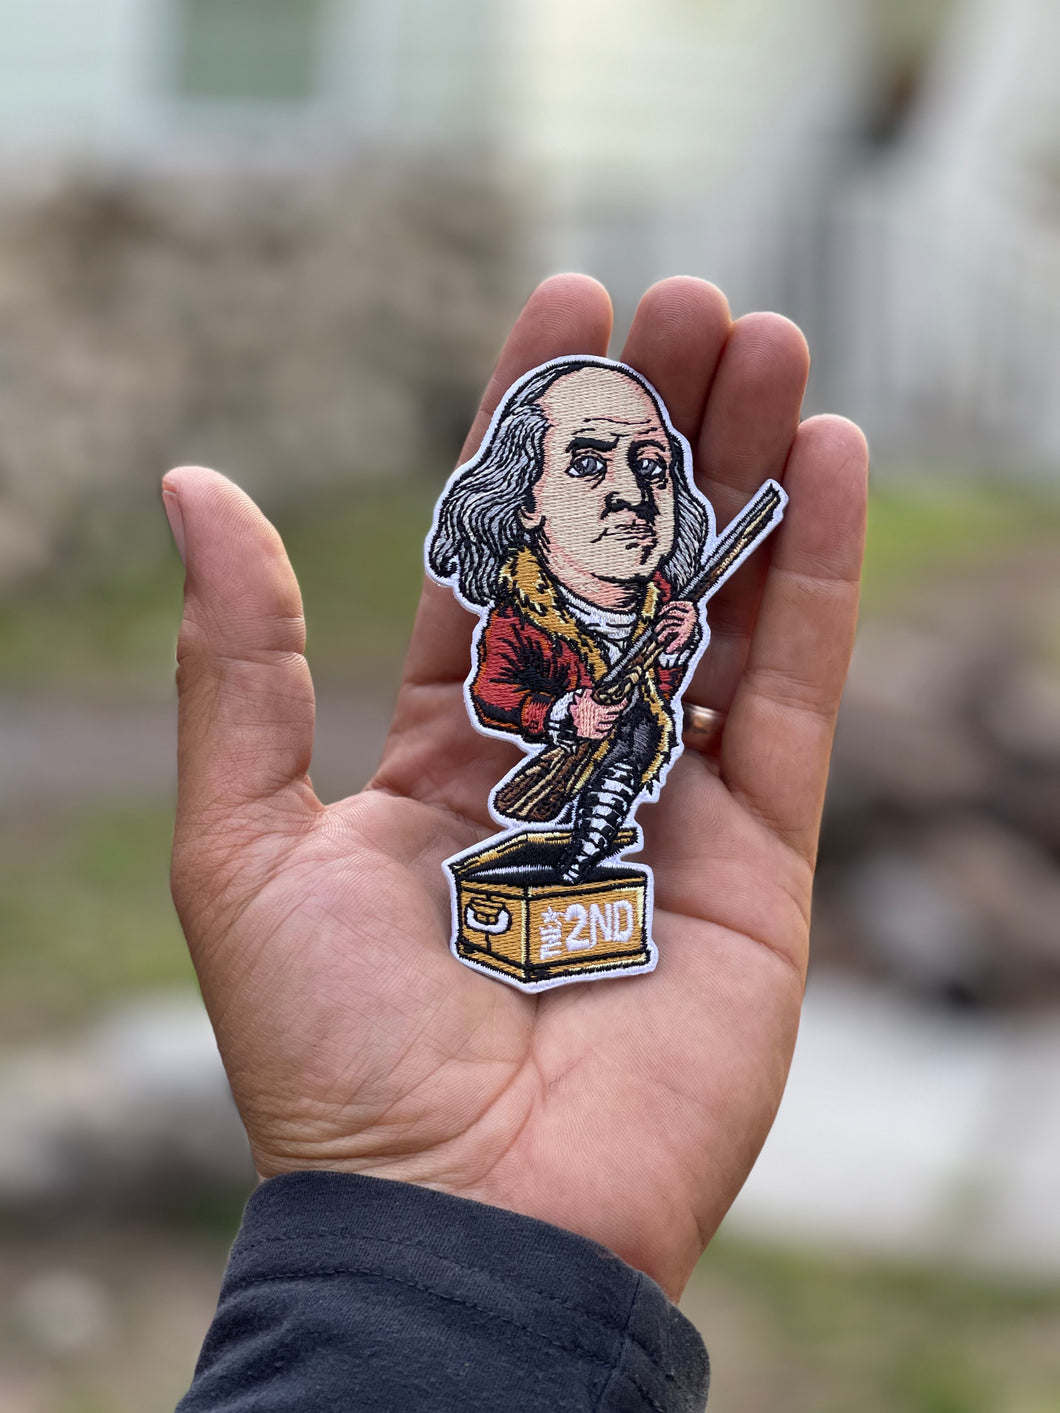 Benjamin Franklin freedom can limit 2 per order